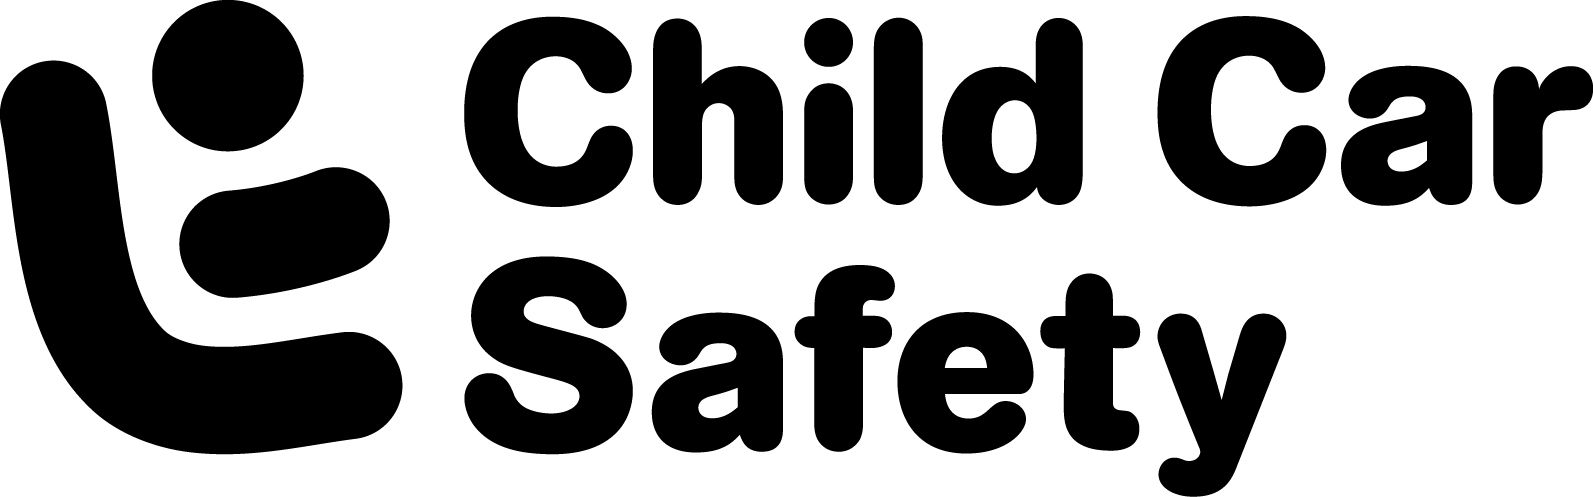 Safe Car Gov >> Pin by Ojebaby on Safety Tips | Bus safety, Baby car mirror, School bus safety